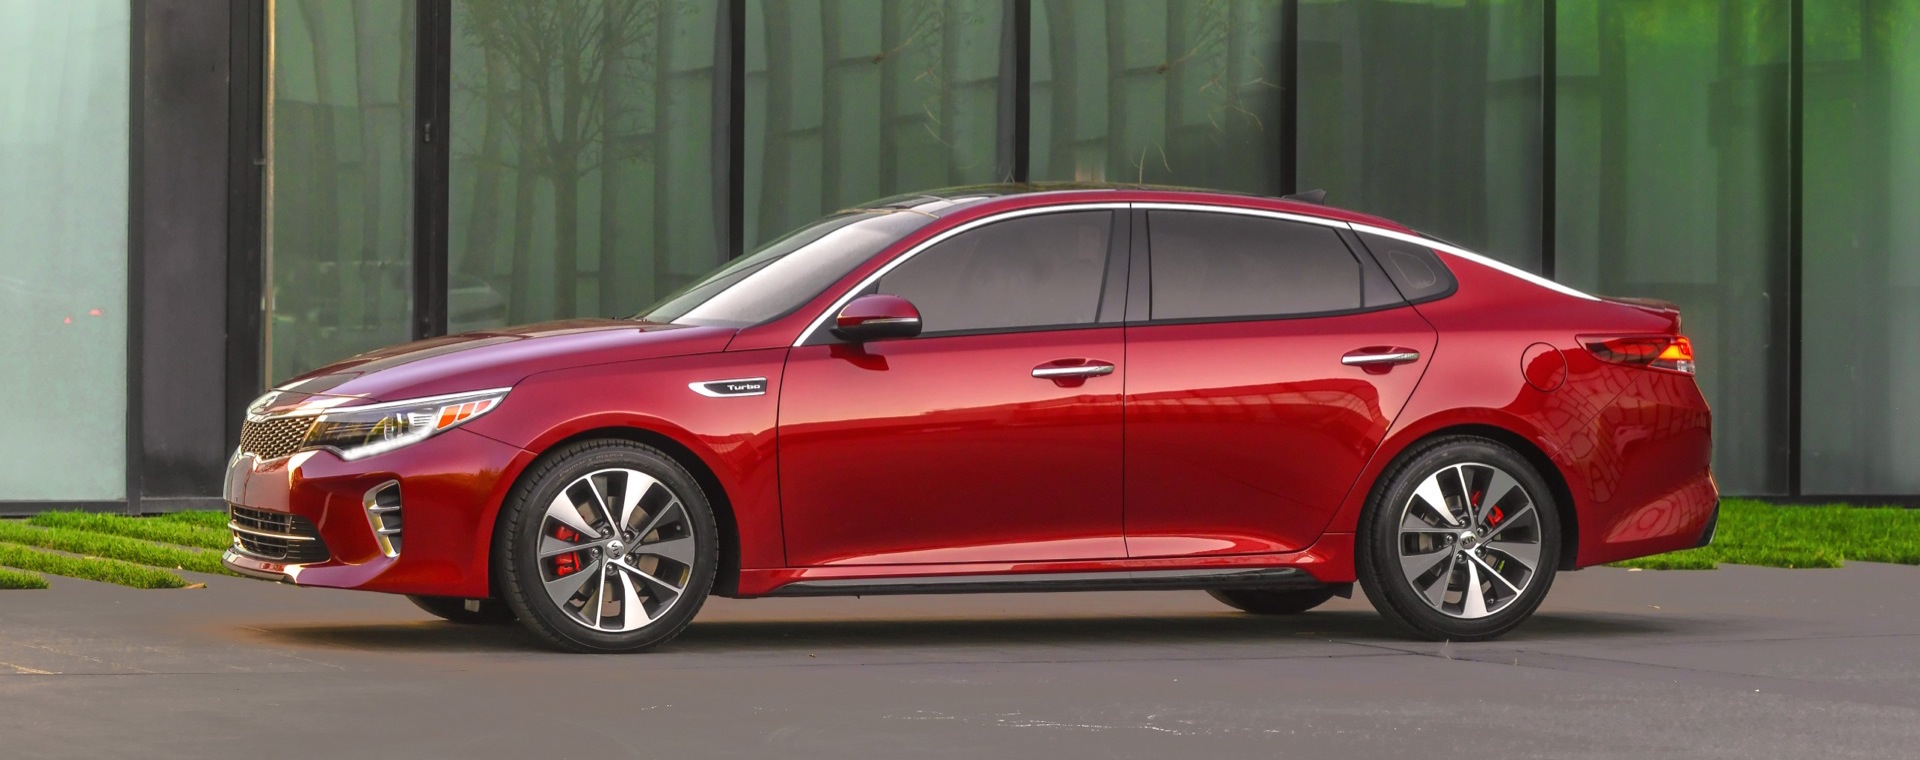 New Optima inventory at Quirk Kia